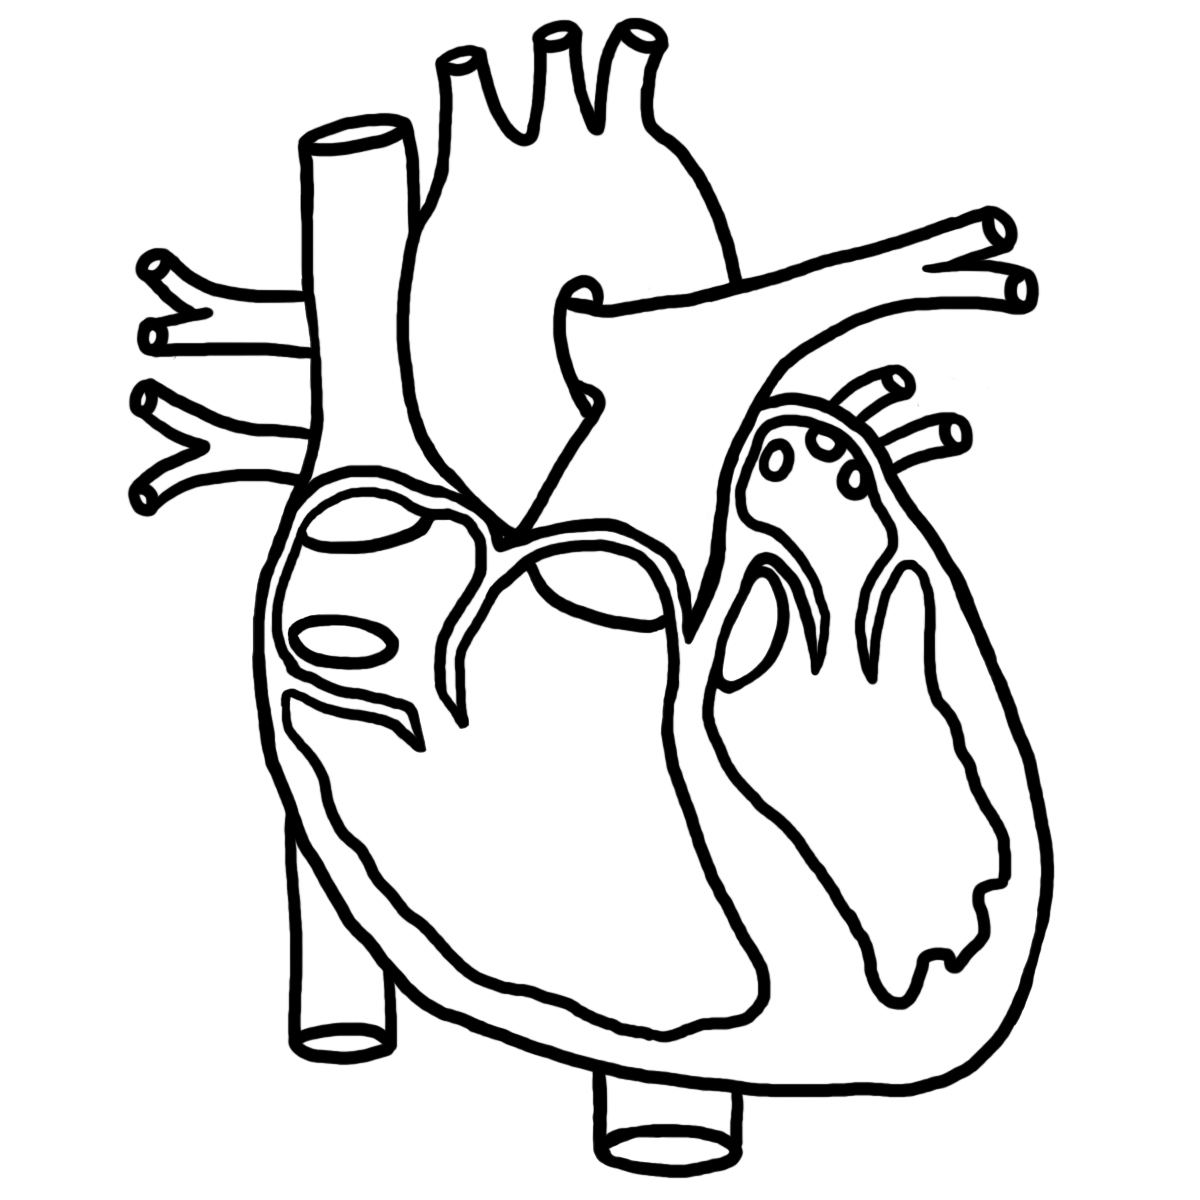 anatomical heart coloring pages anatomical heart coloring pages coloring heart anatomical pages